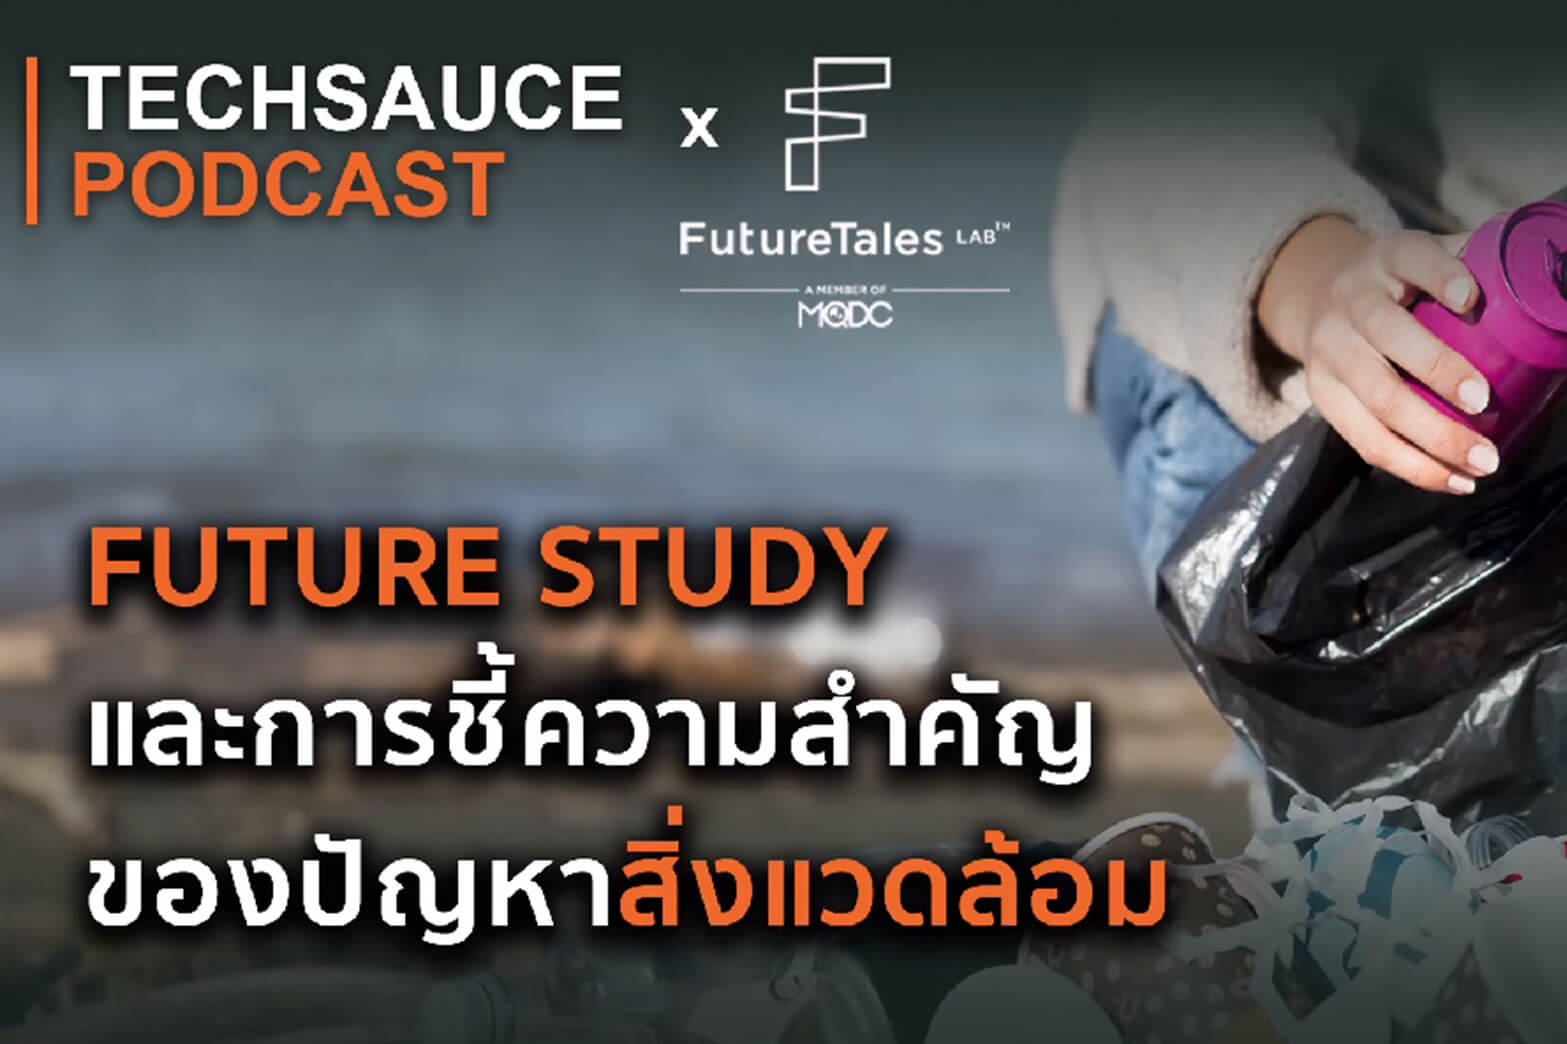 FutureTales Lab Forecasts Environmental Impact of COVID-19 in Techsauce Podcast